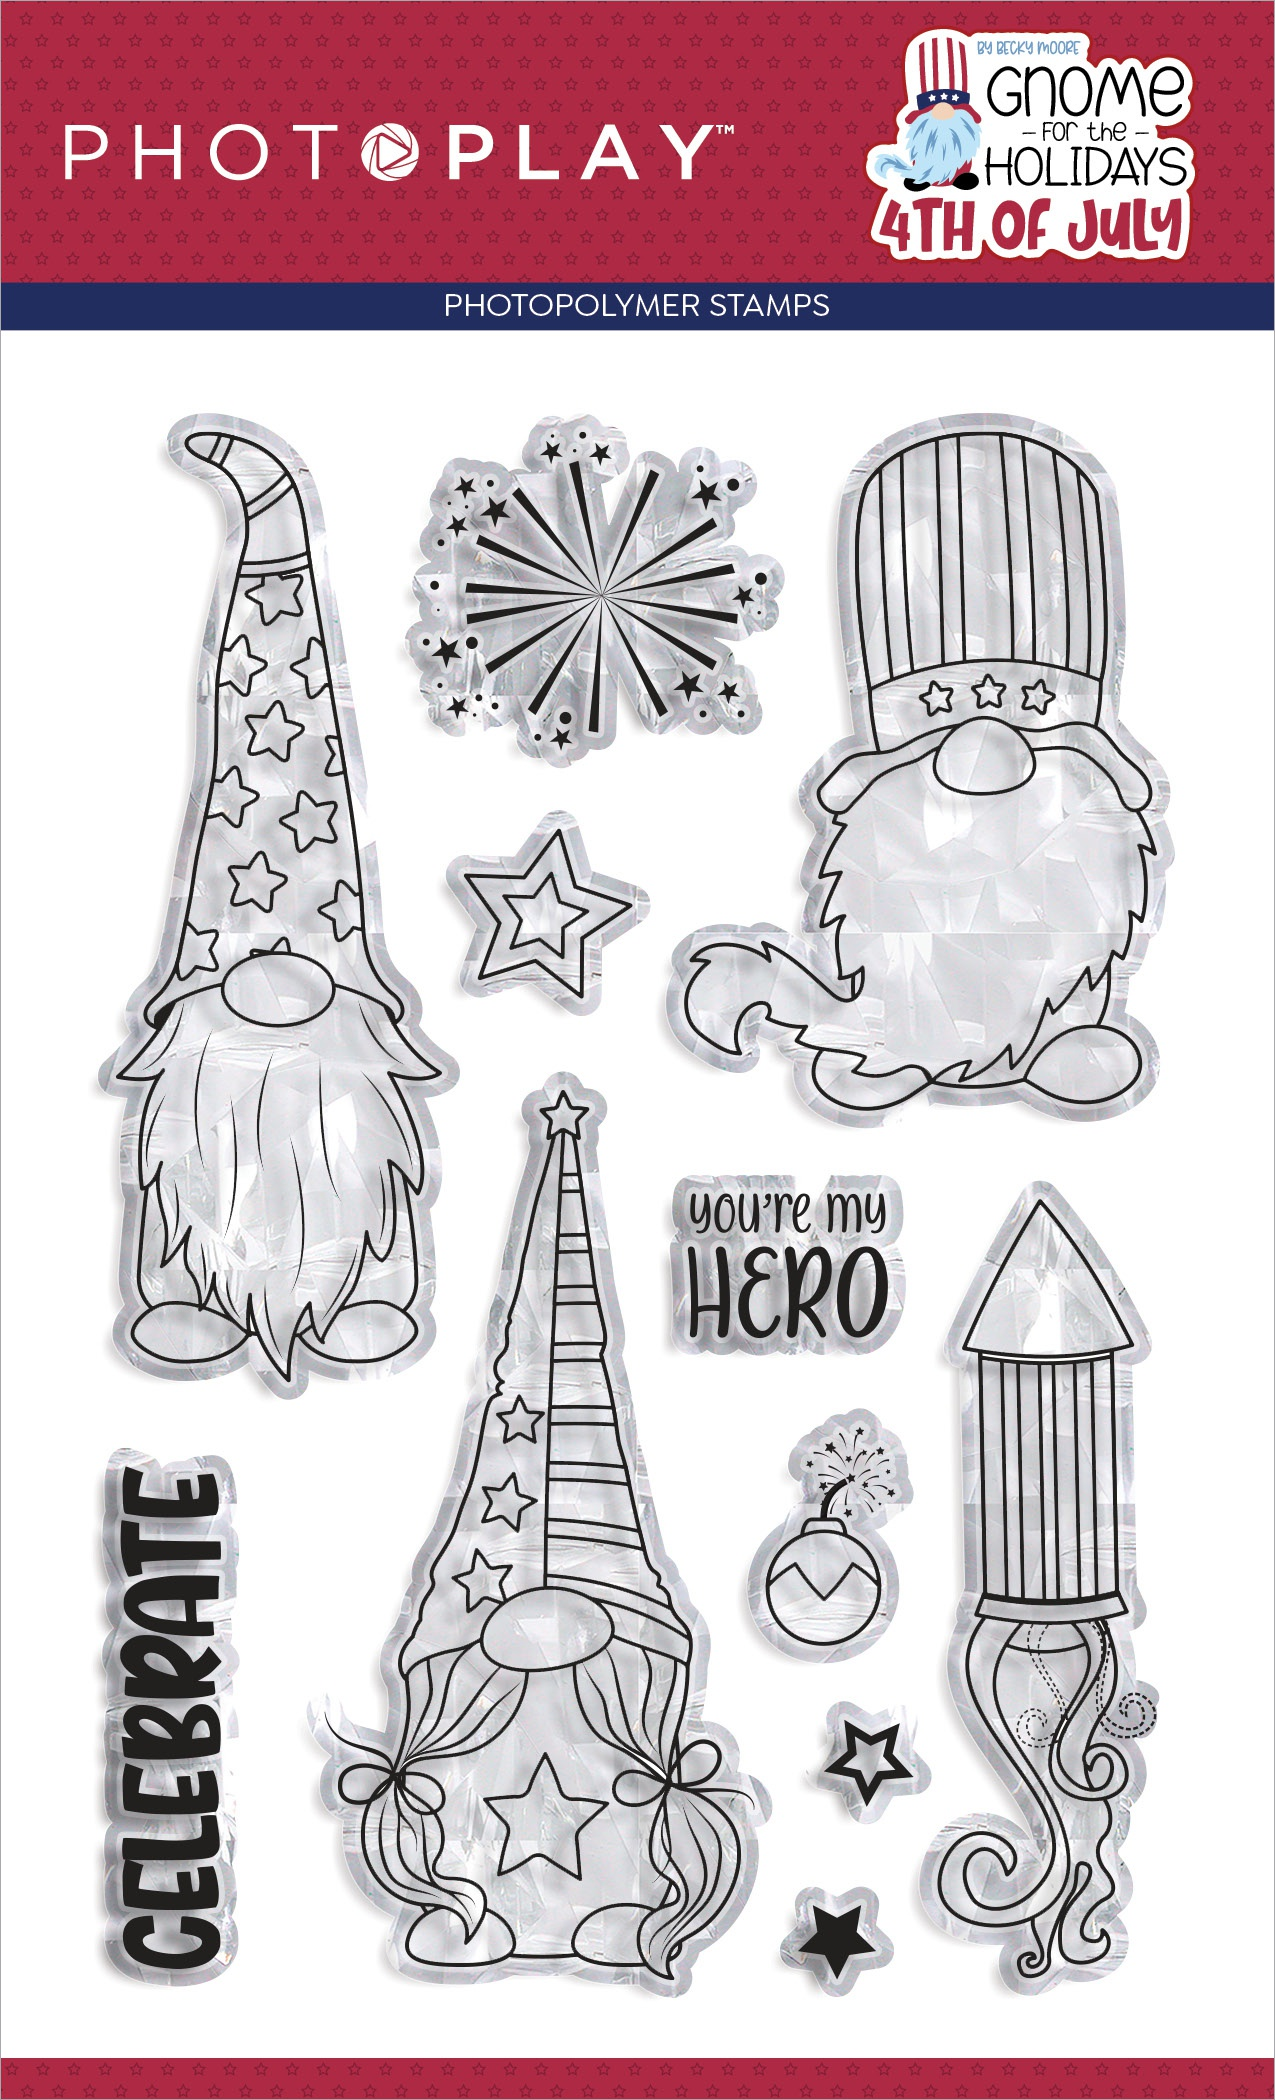 Gnome For July 4th PhotoPlay Photopolymer Stamp-